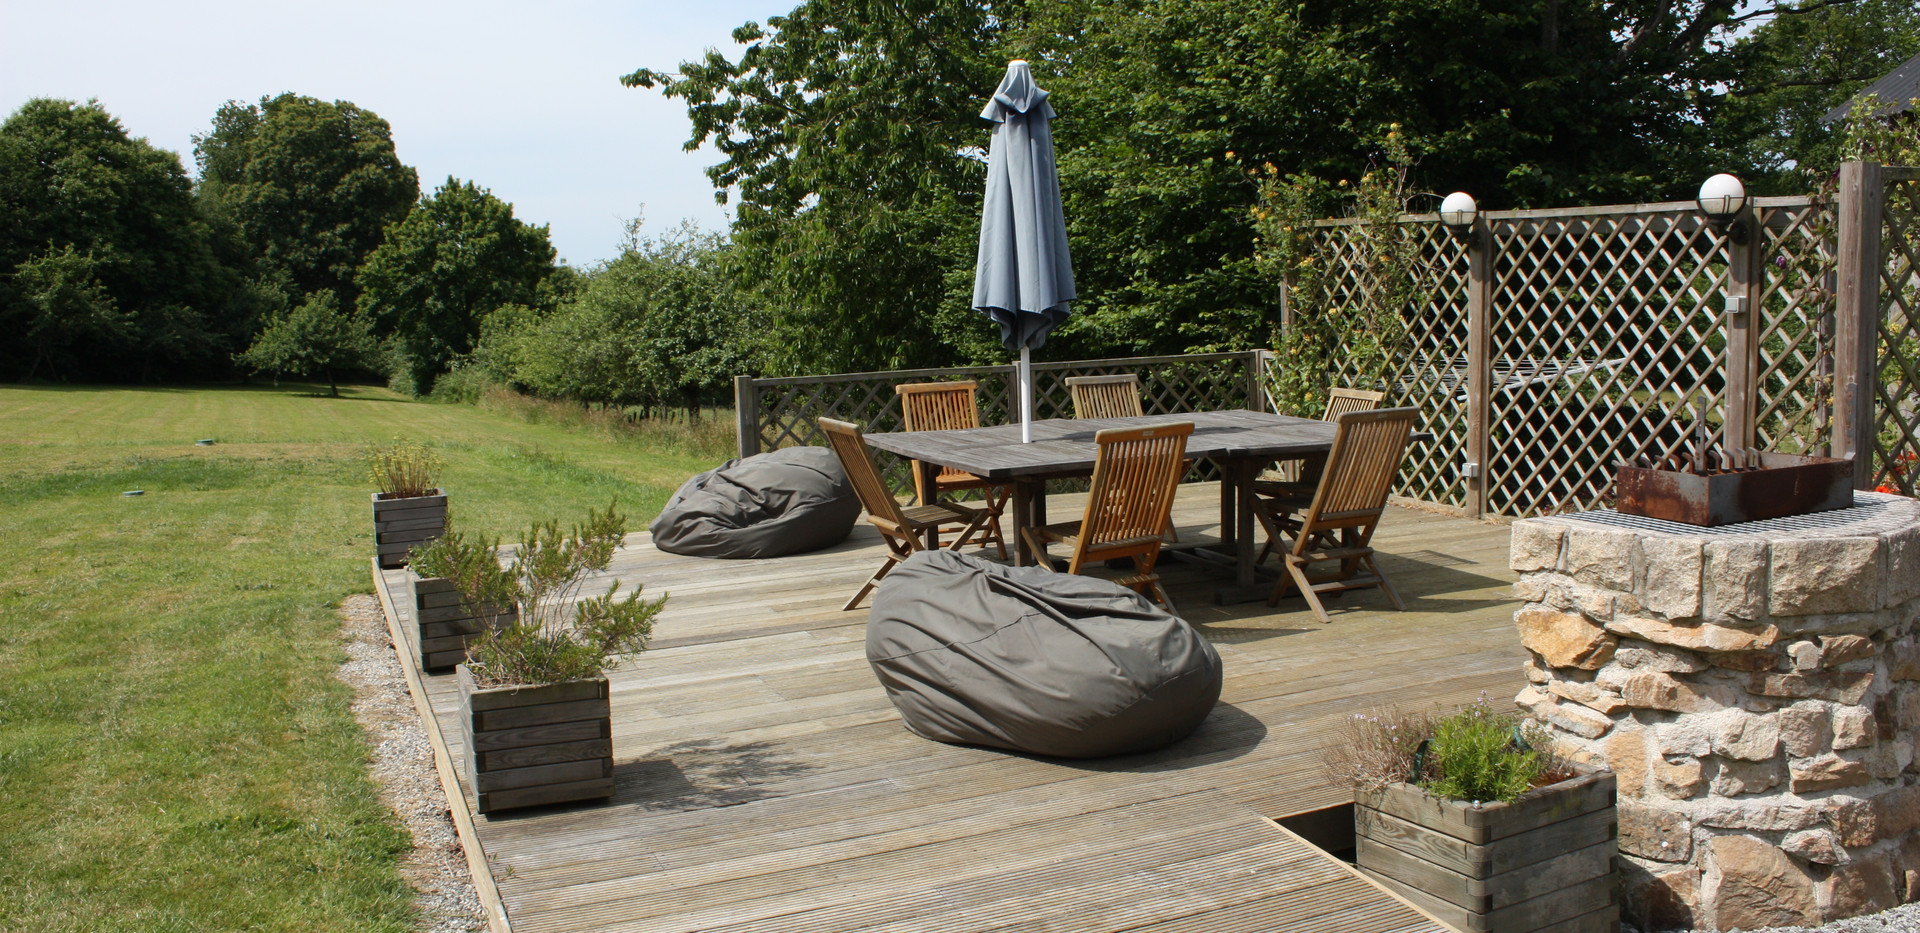 The decking area in the garden